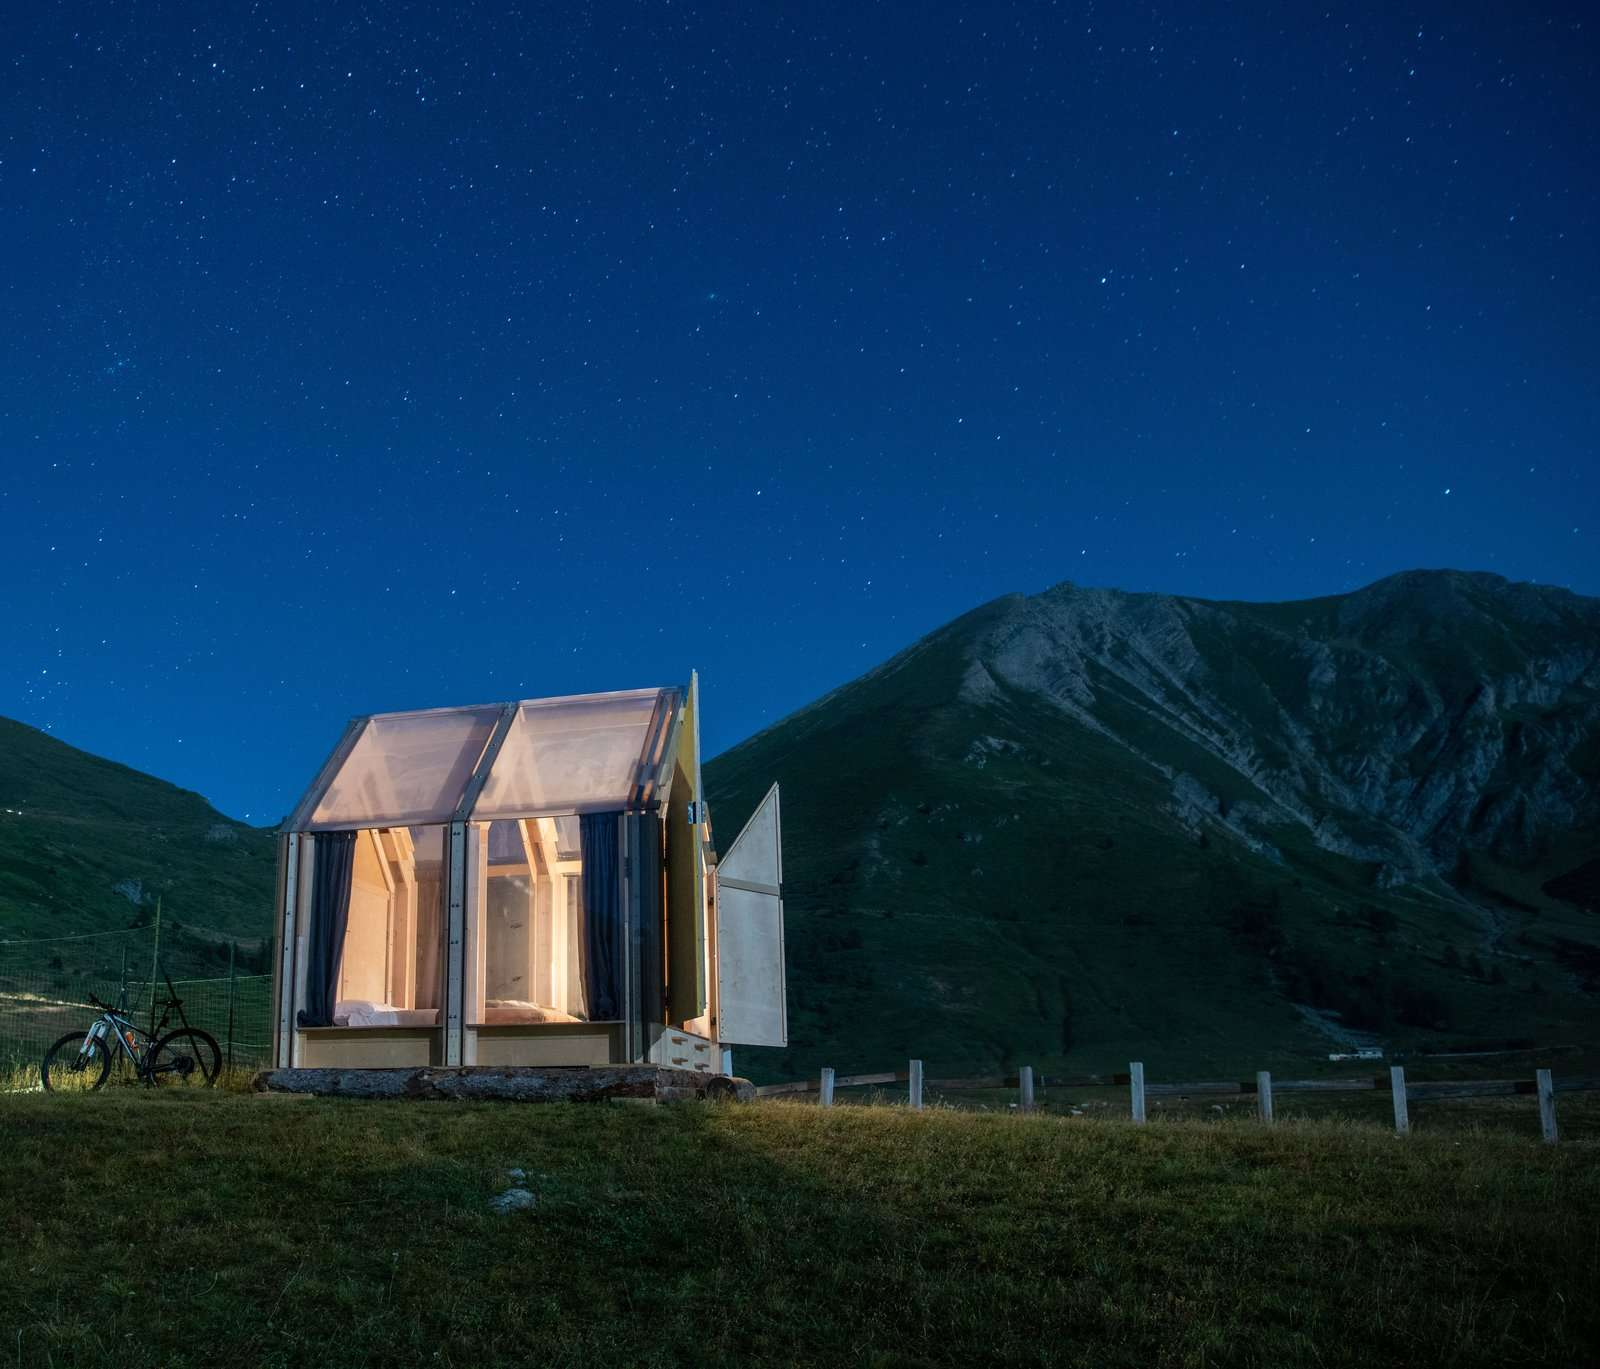 Guests can gaze at the stars all night long.